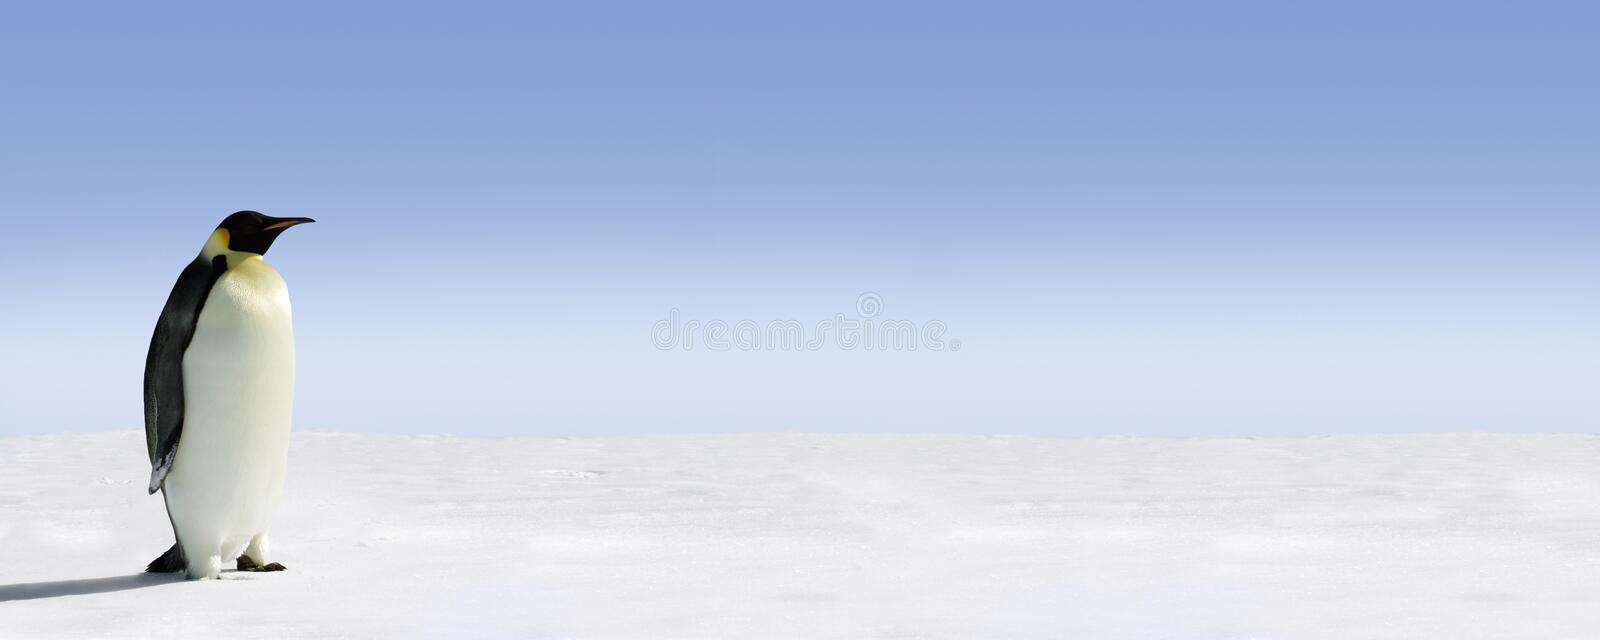 Penguin panorama. Panoramic image of a penguin standing on snow, blue sky in the background stock image